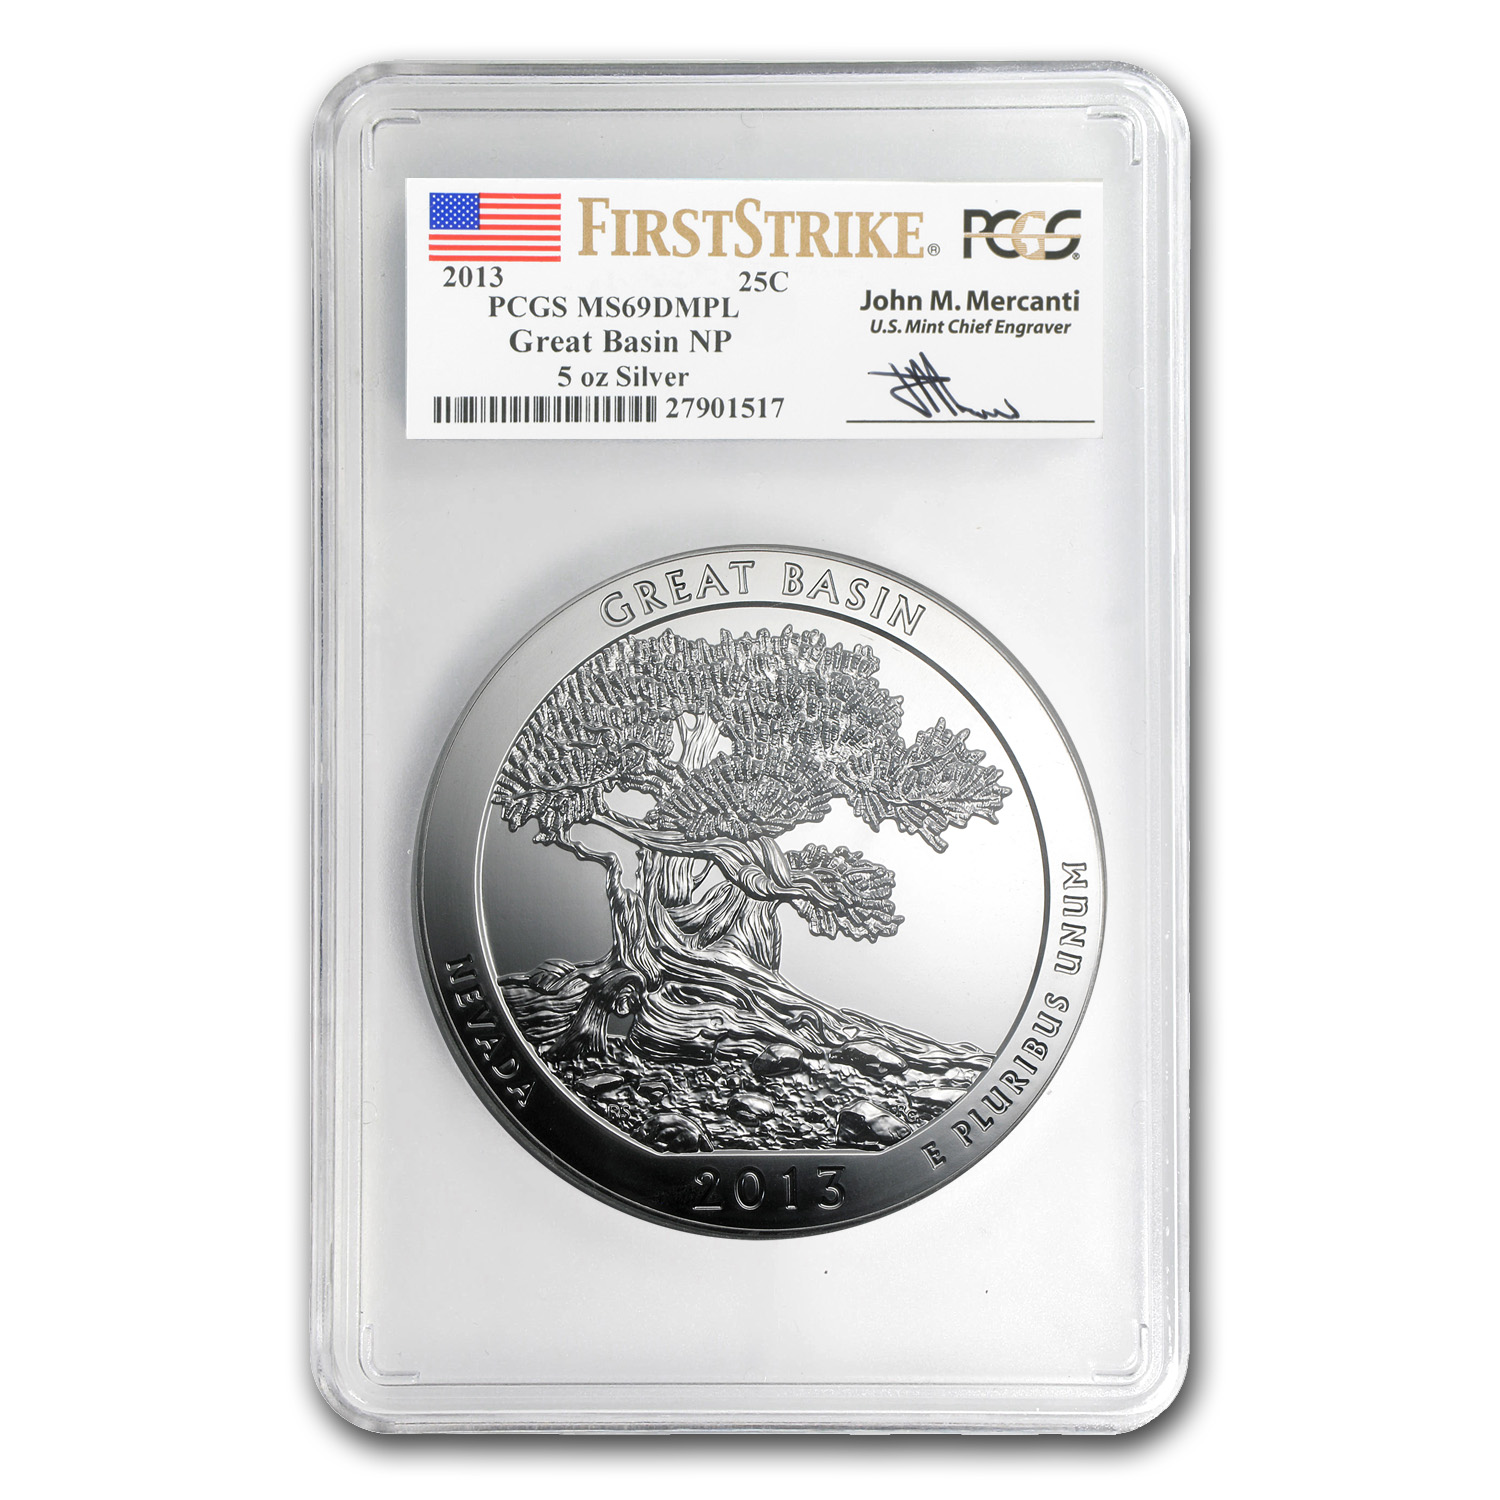 2013 5 oz Silver ATB Great Basin MS-69 DMPL PCGS (FS, Mercanti)